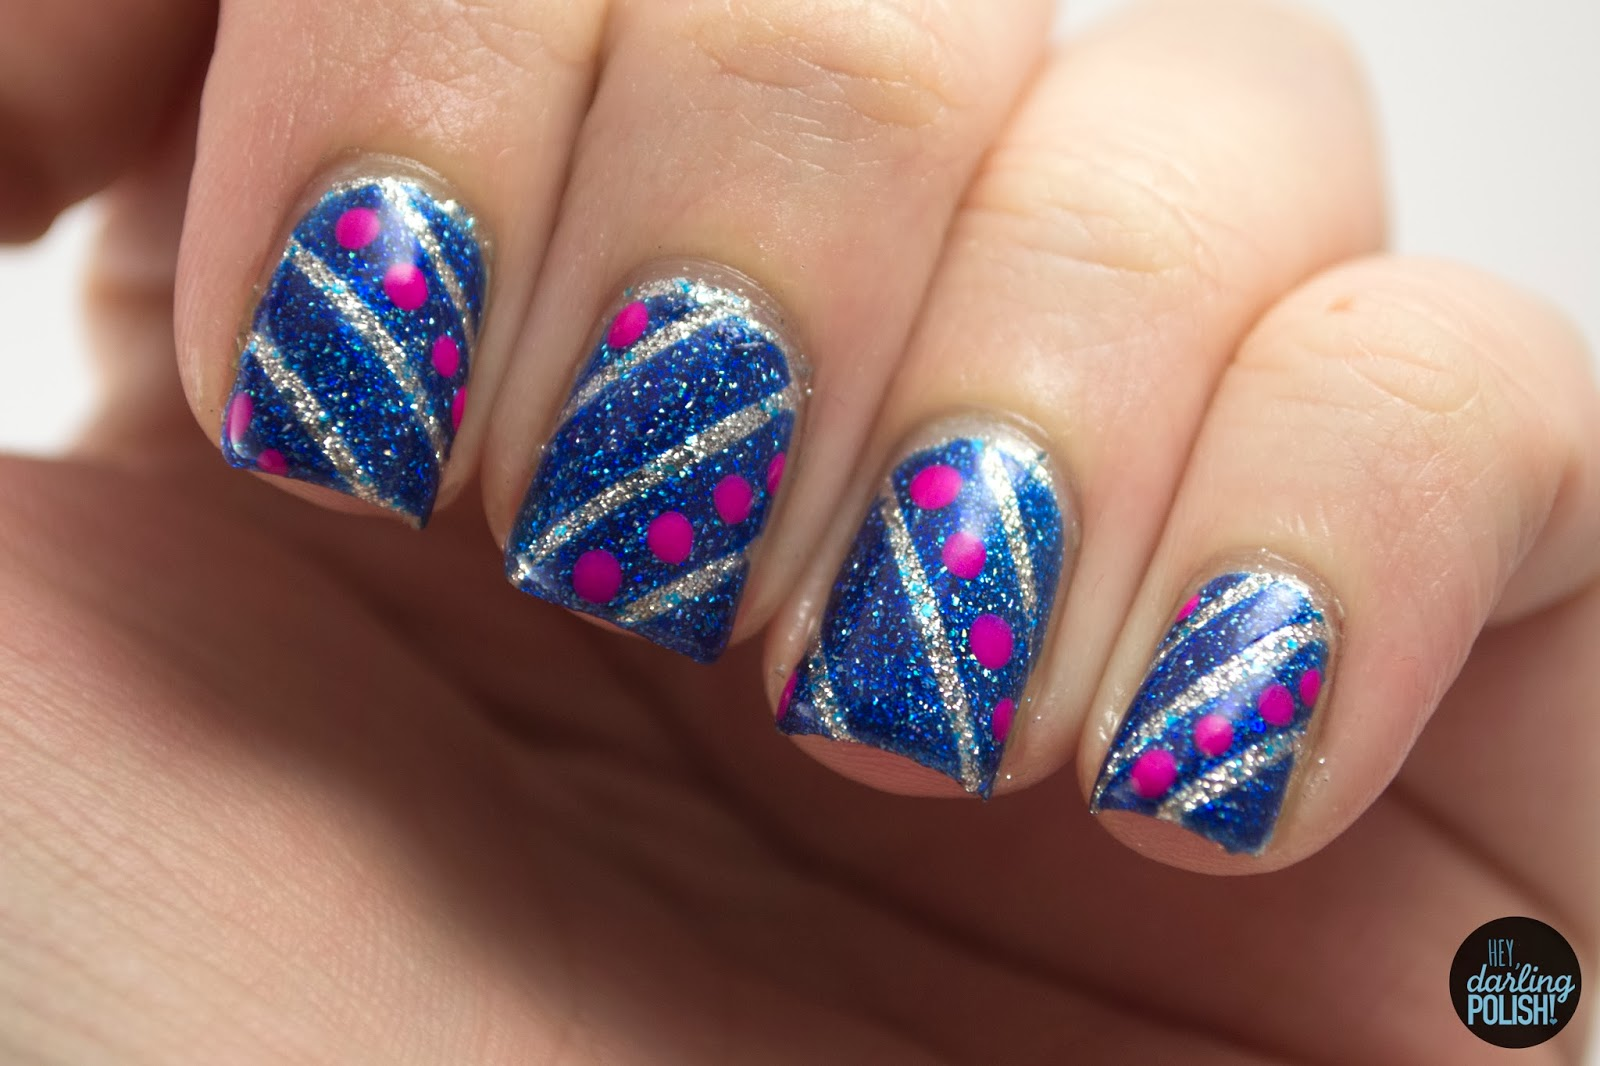 nails, nail art, nail polish, polish, stripes, dots, blue, silver, pink, theme buffet, hey darling polish